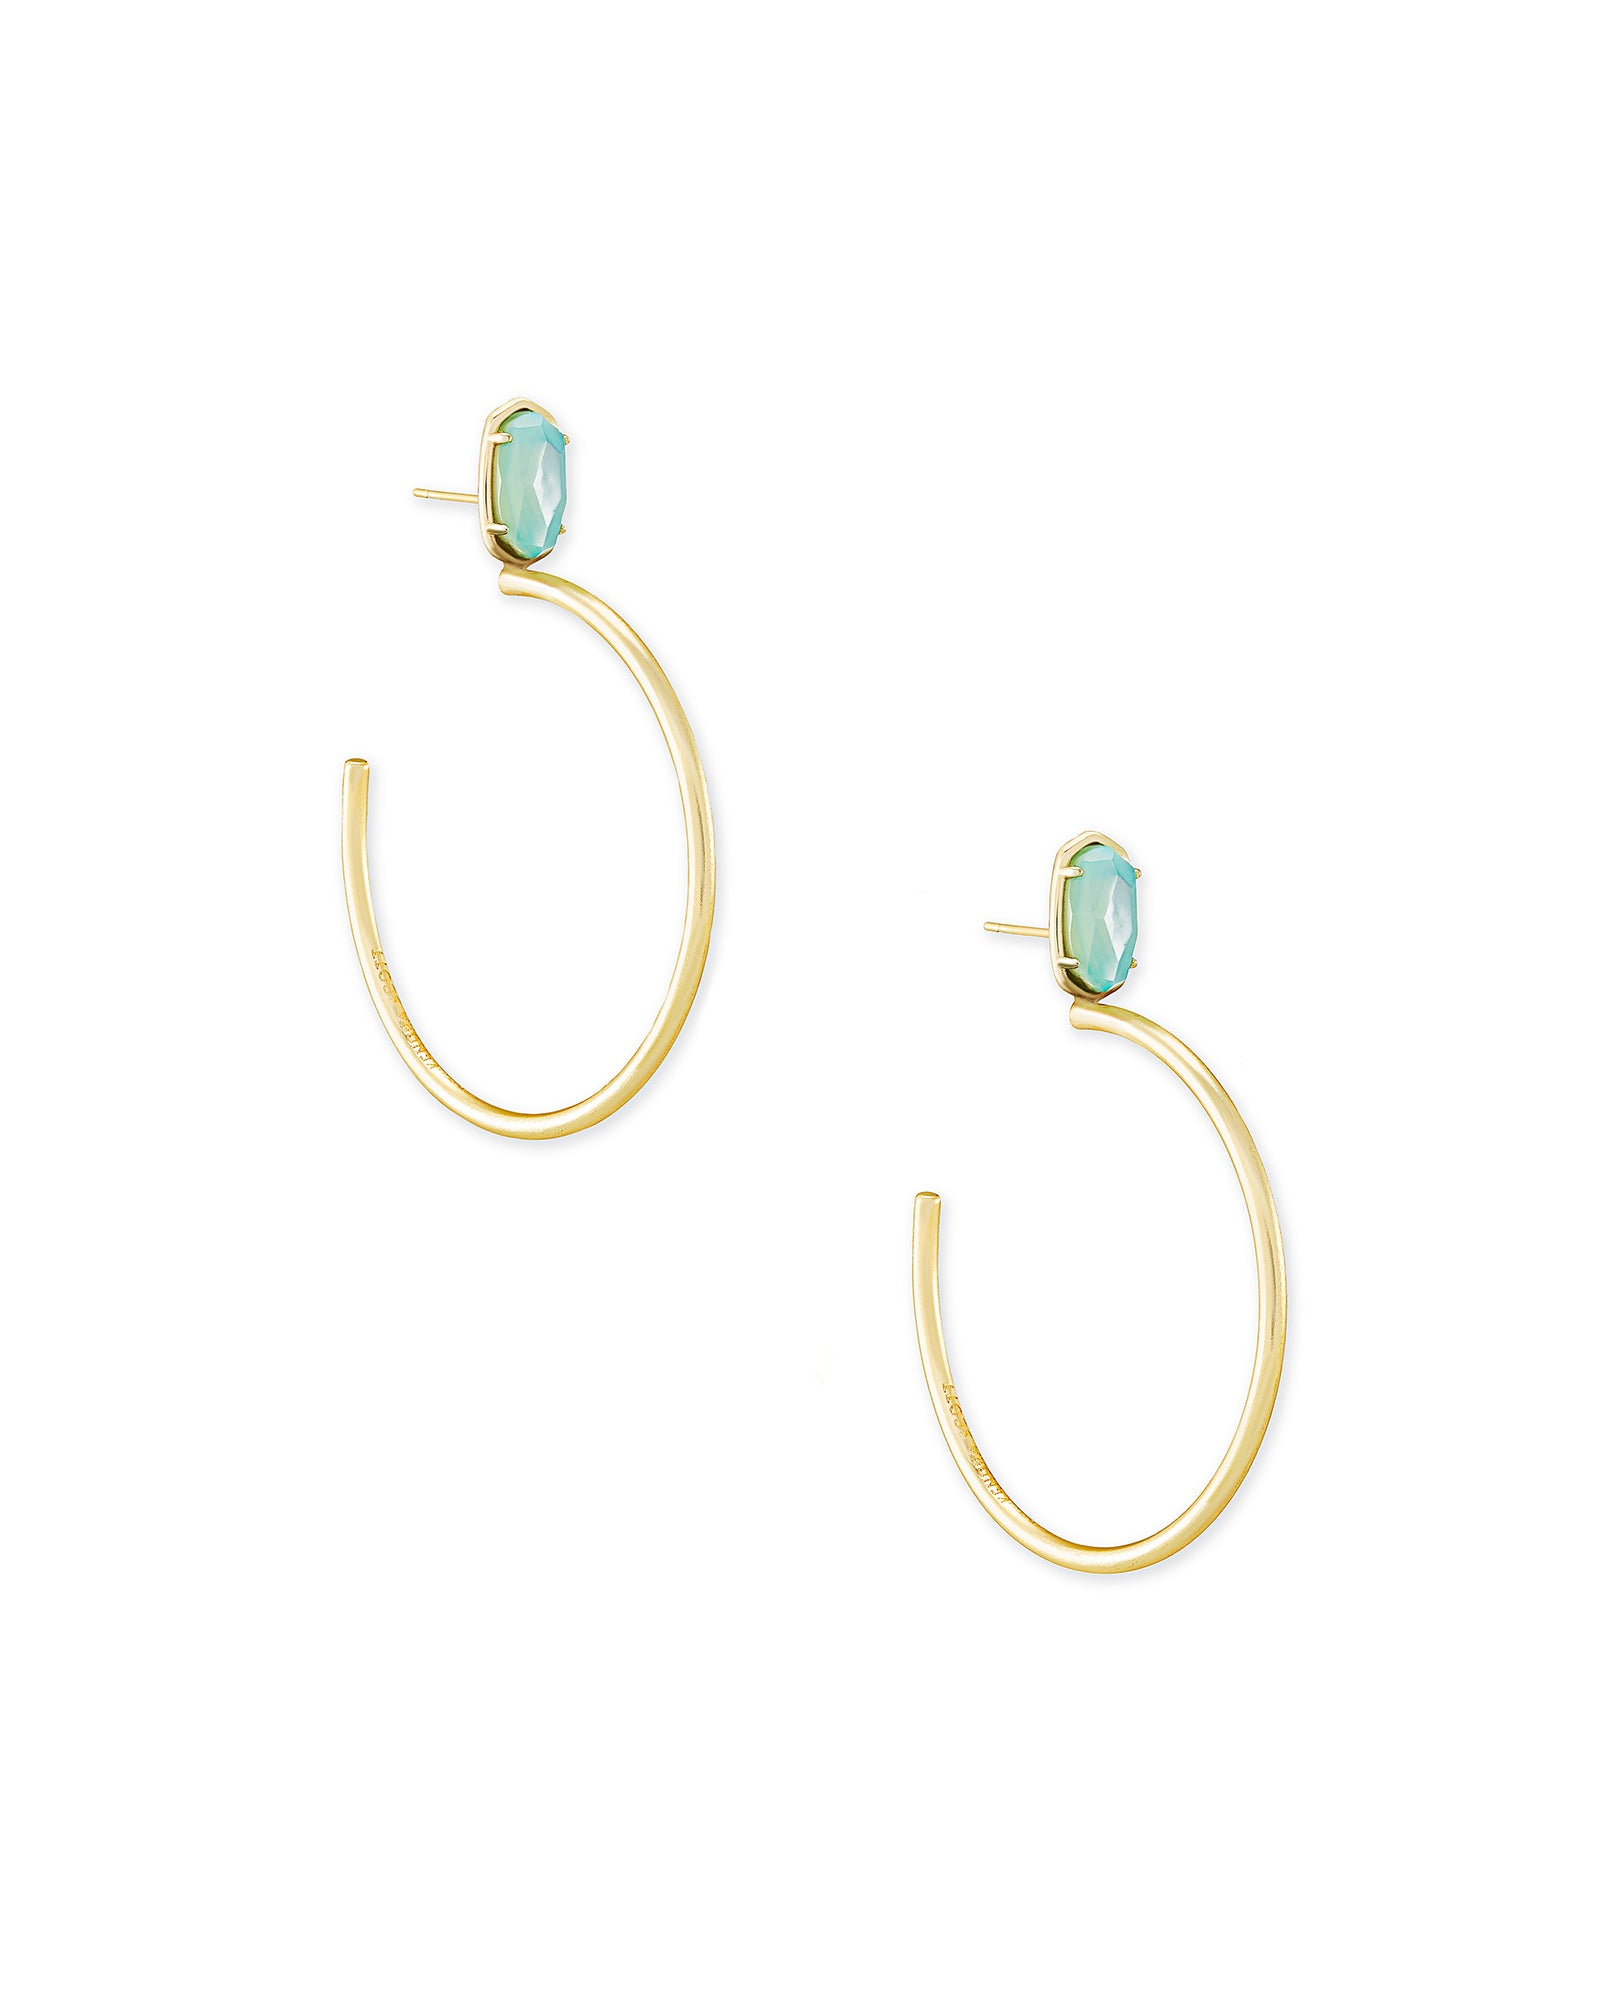 Small Pepper Gold Hoop Earrings in Aqua Illusion